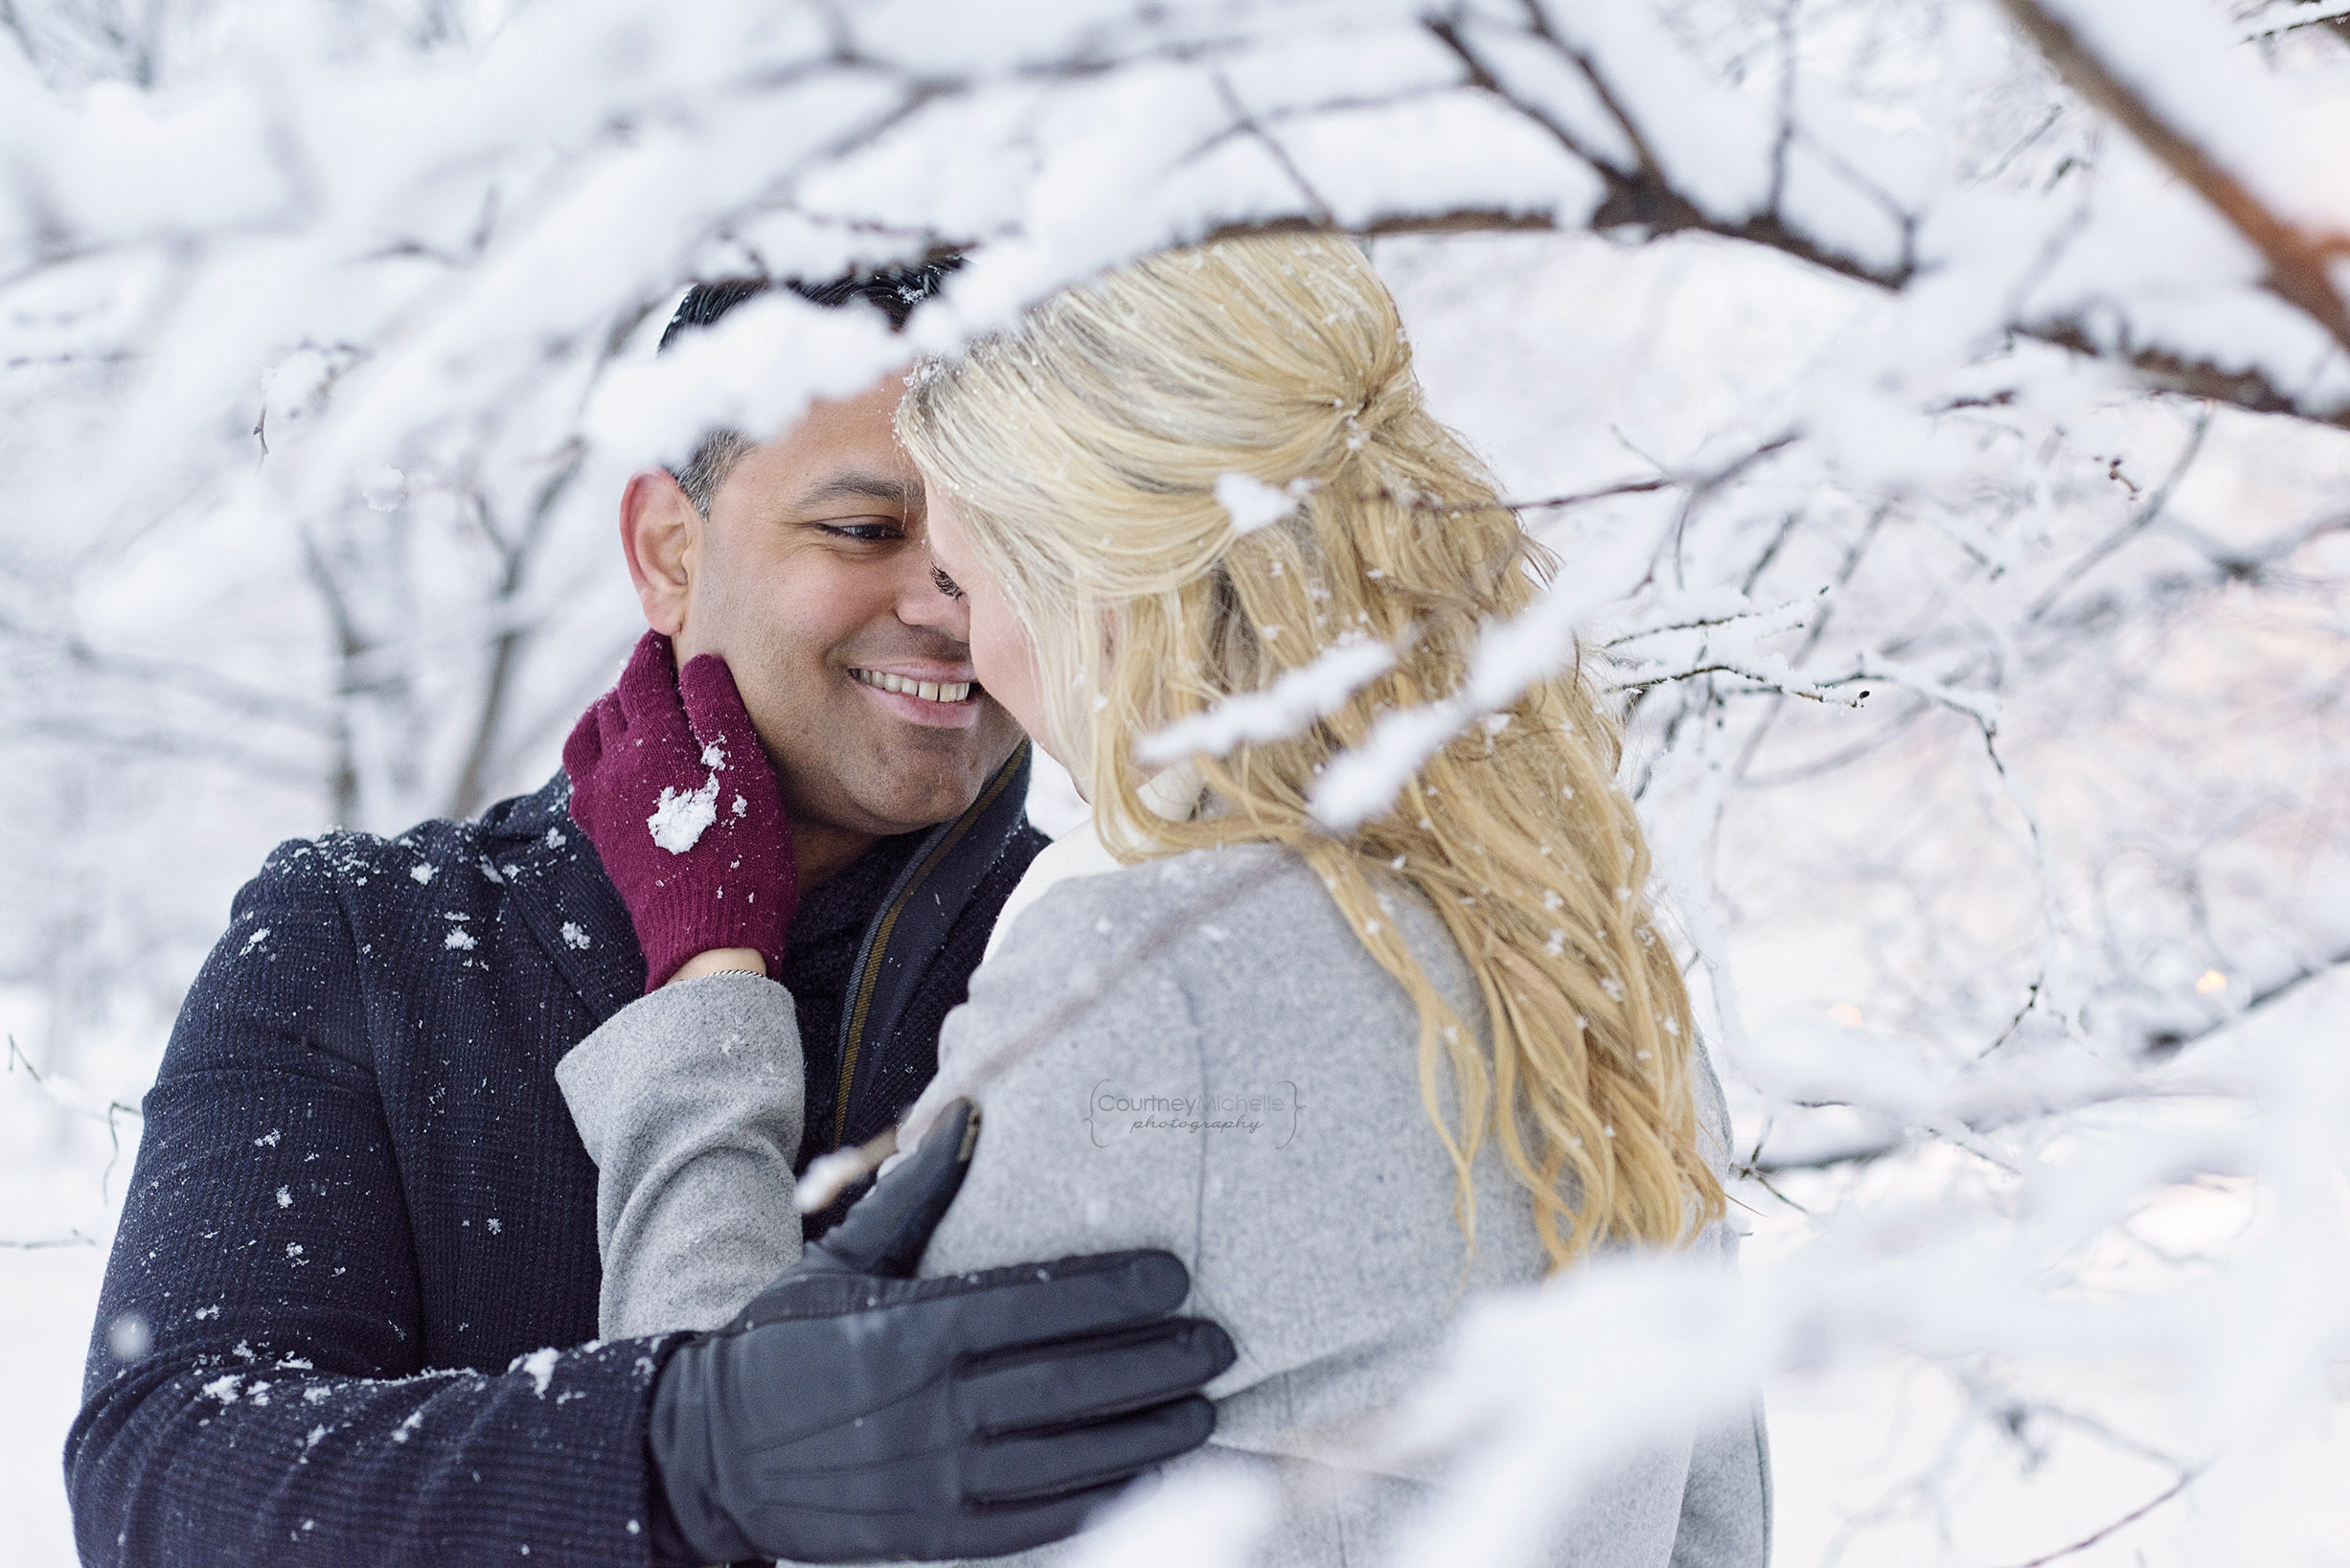 snowy-chicago-engagement-photography-museum-campus-tree-frame-courtney-laper©COPYRIGHTCMP-3530.jpg